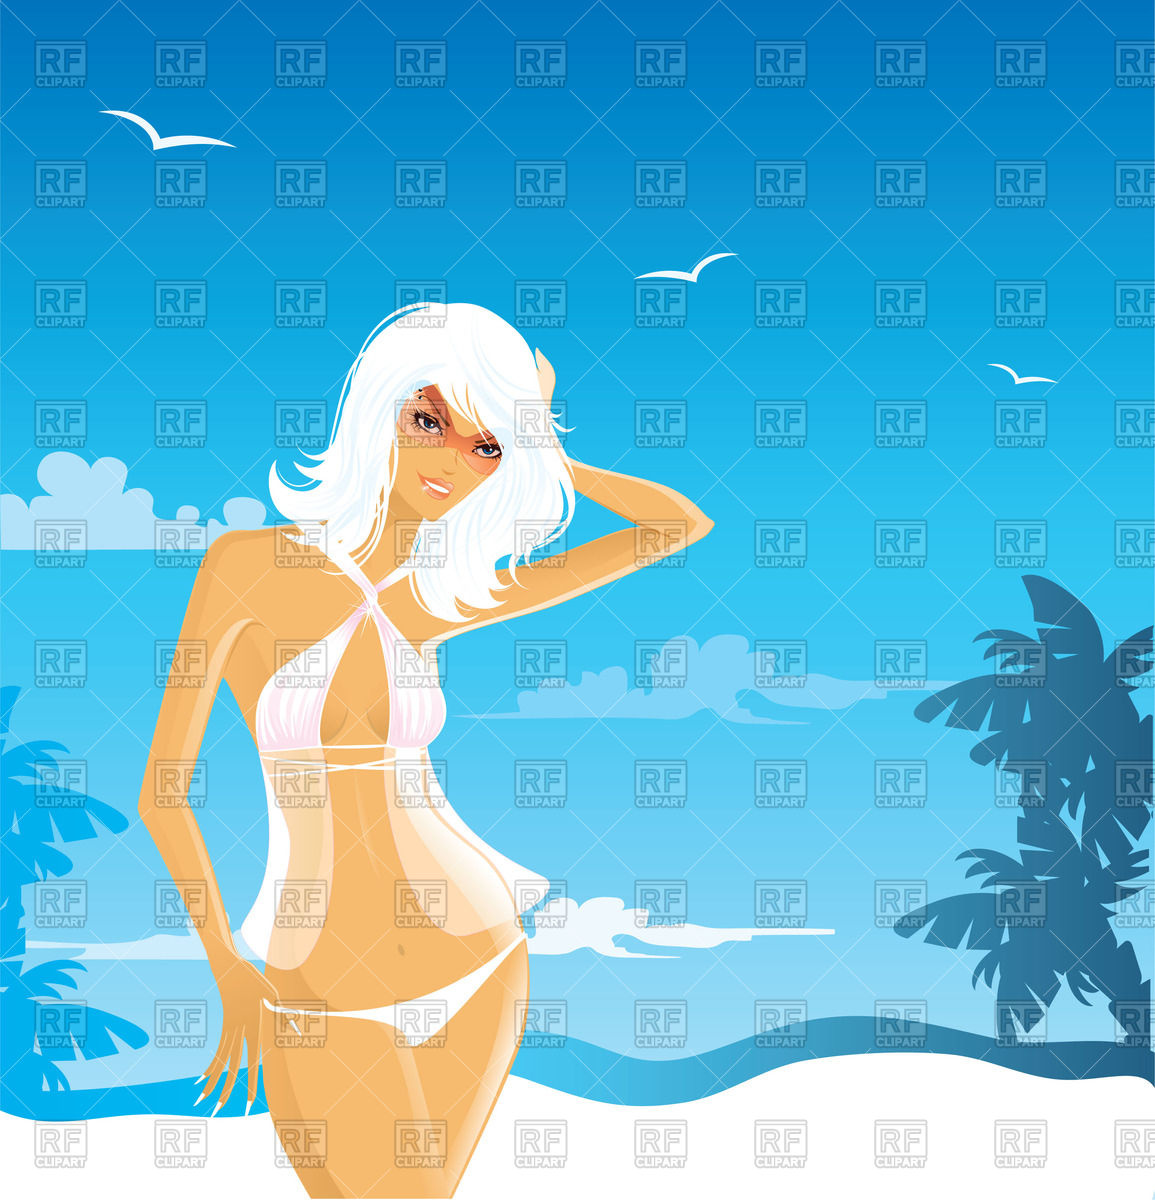 Sexy woman in swimsuit on the beach Vector Image #58179.